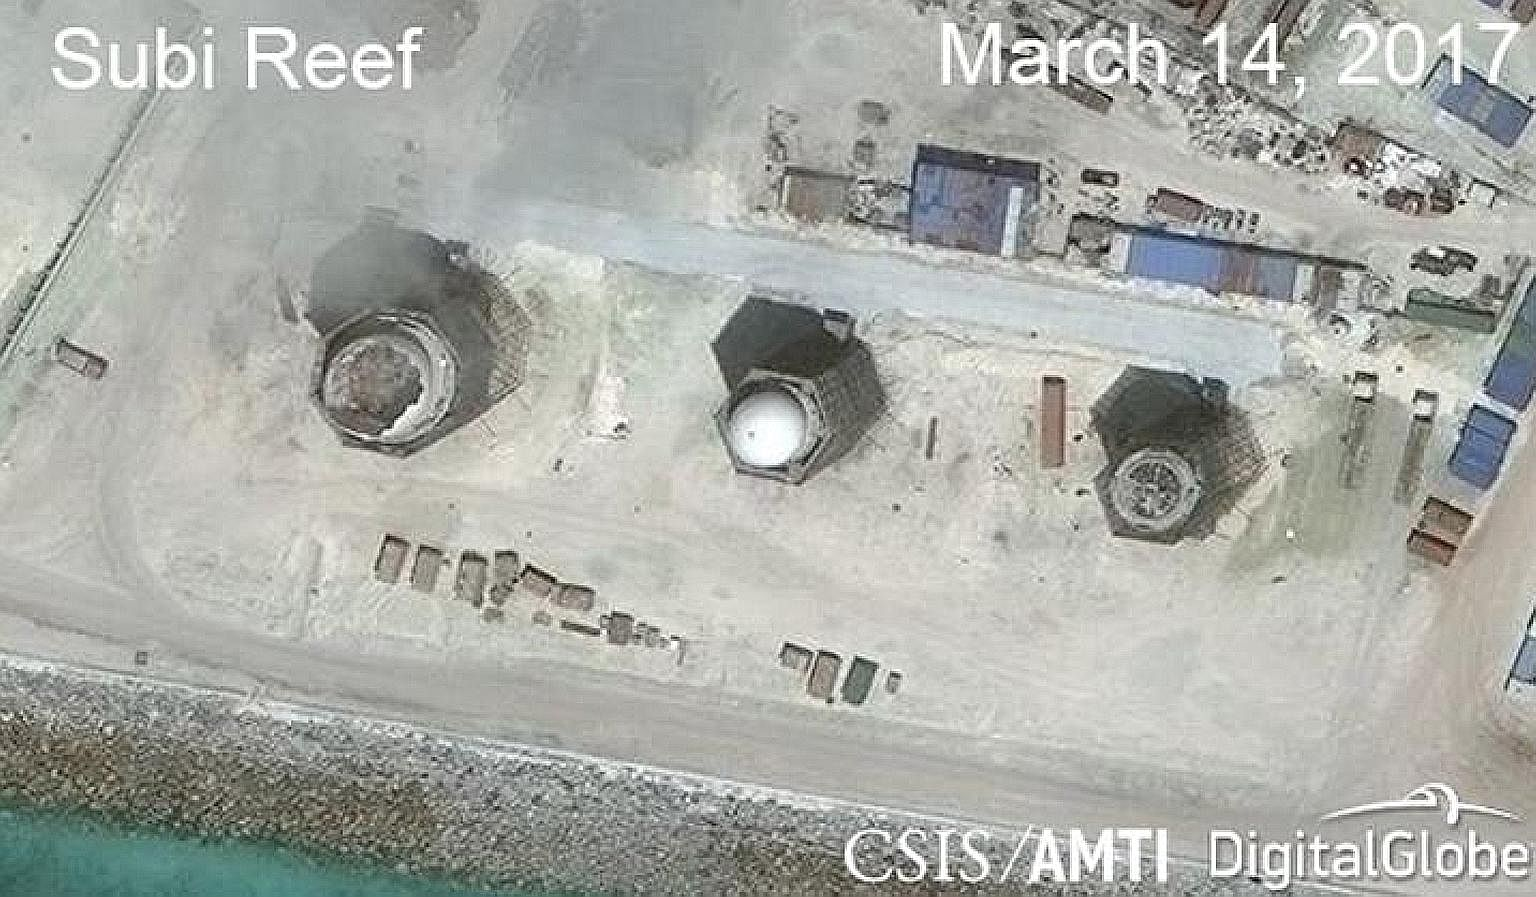 Structures seen in satellite images of (from far left) Subi Reef, Mischief Reef and Fiery Cross Reef in the Spratly Islands.